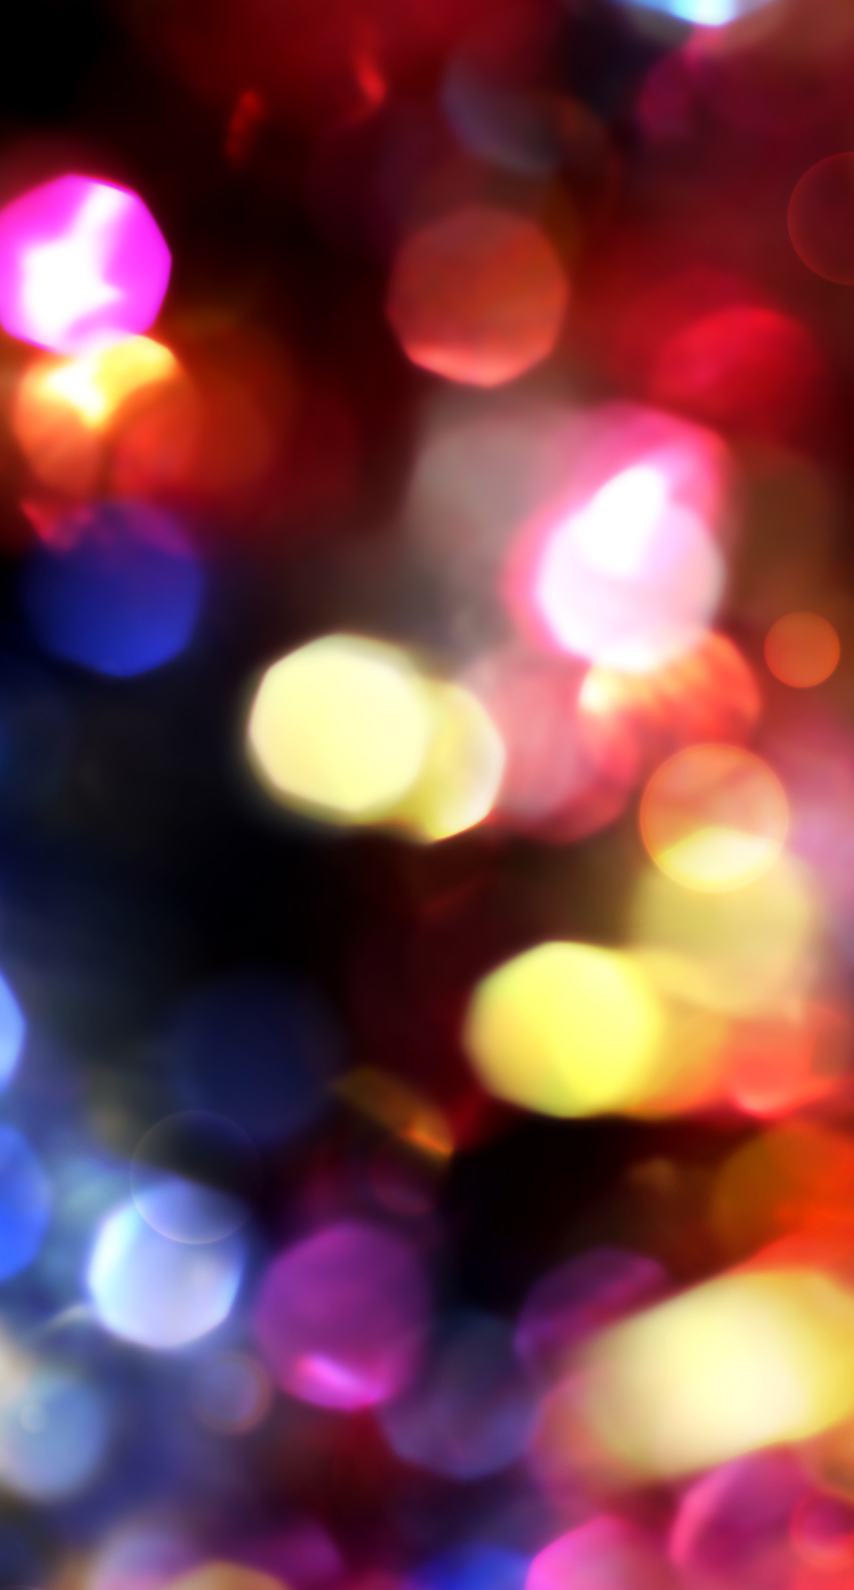 round out, shining, decoration, glisten, merry, party, eve, illuminated, focus, bit, disco